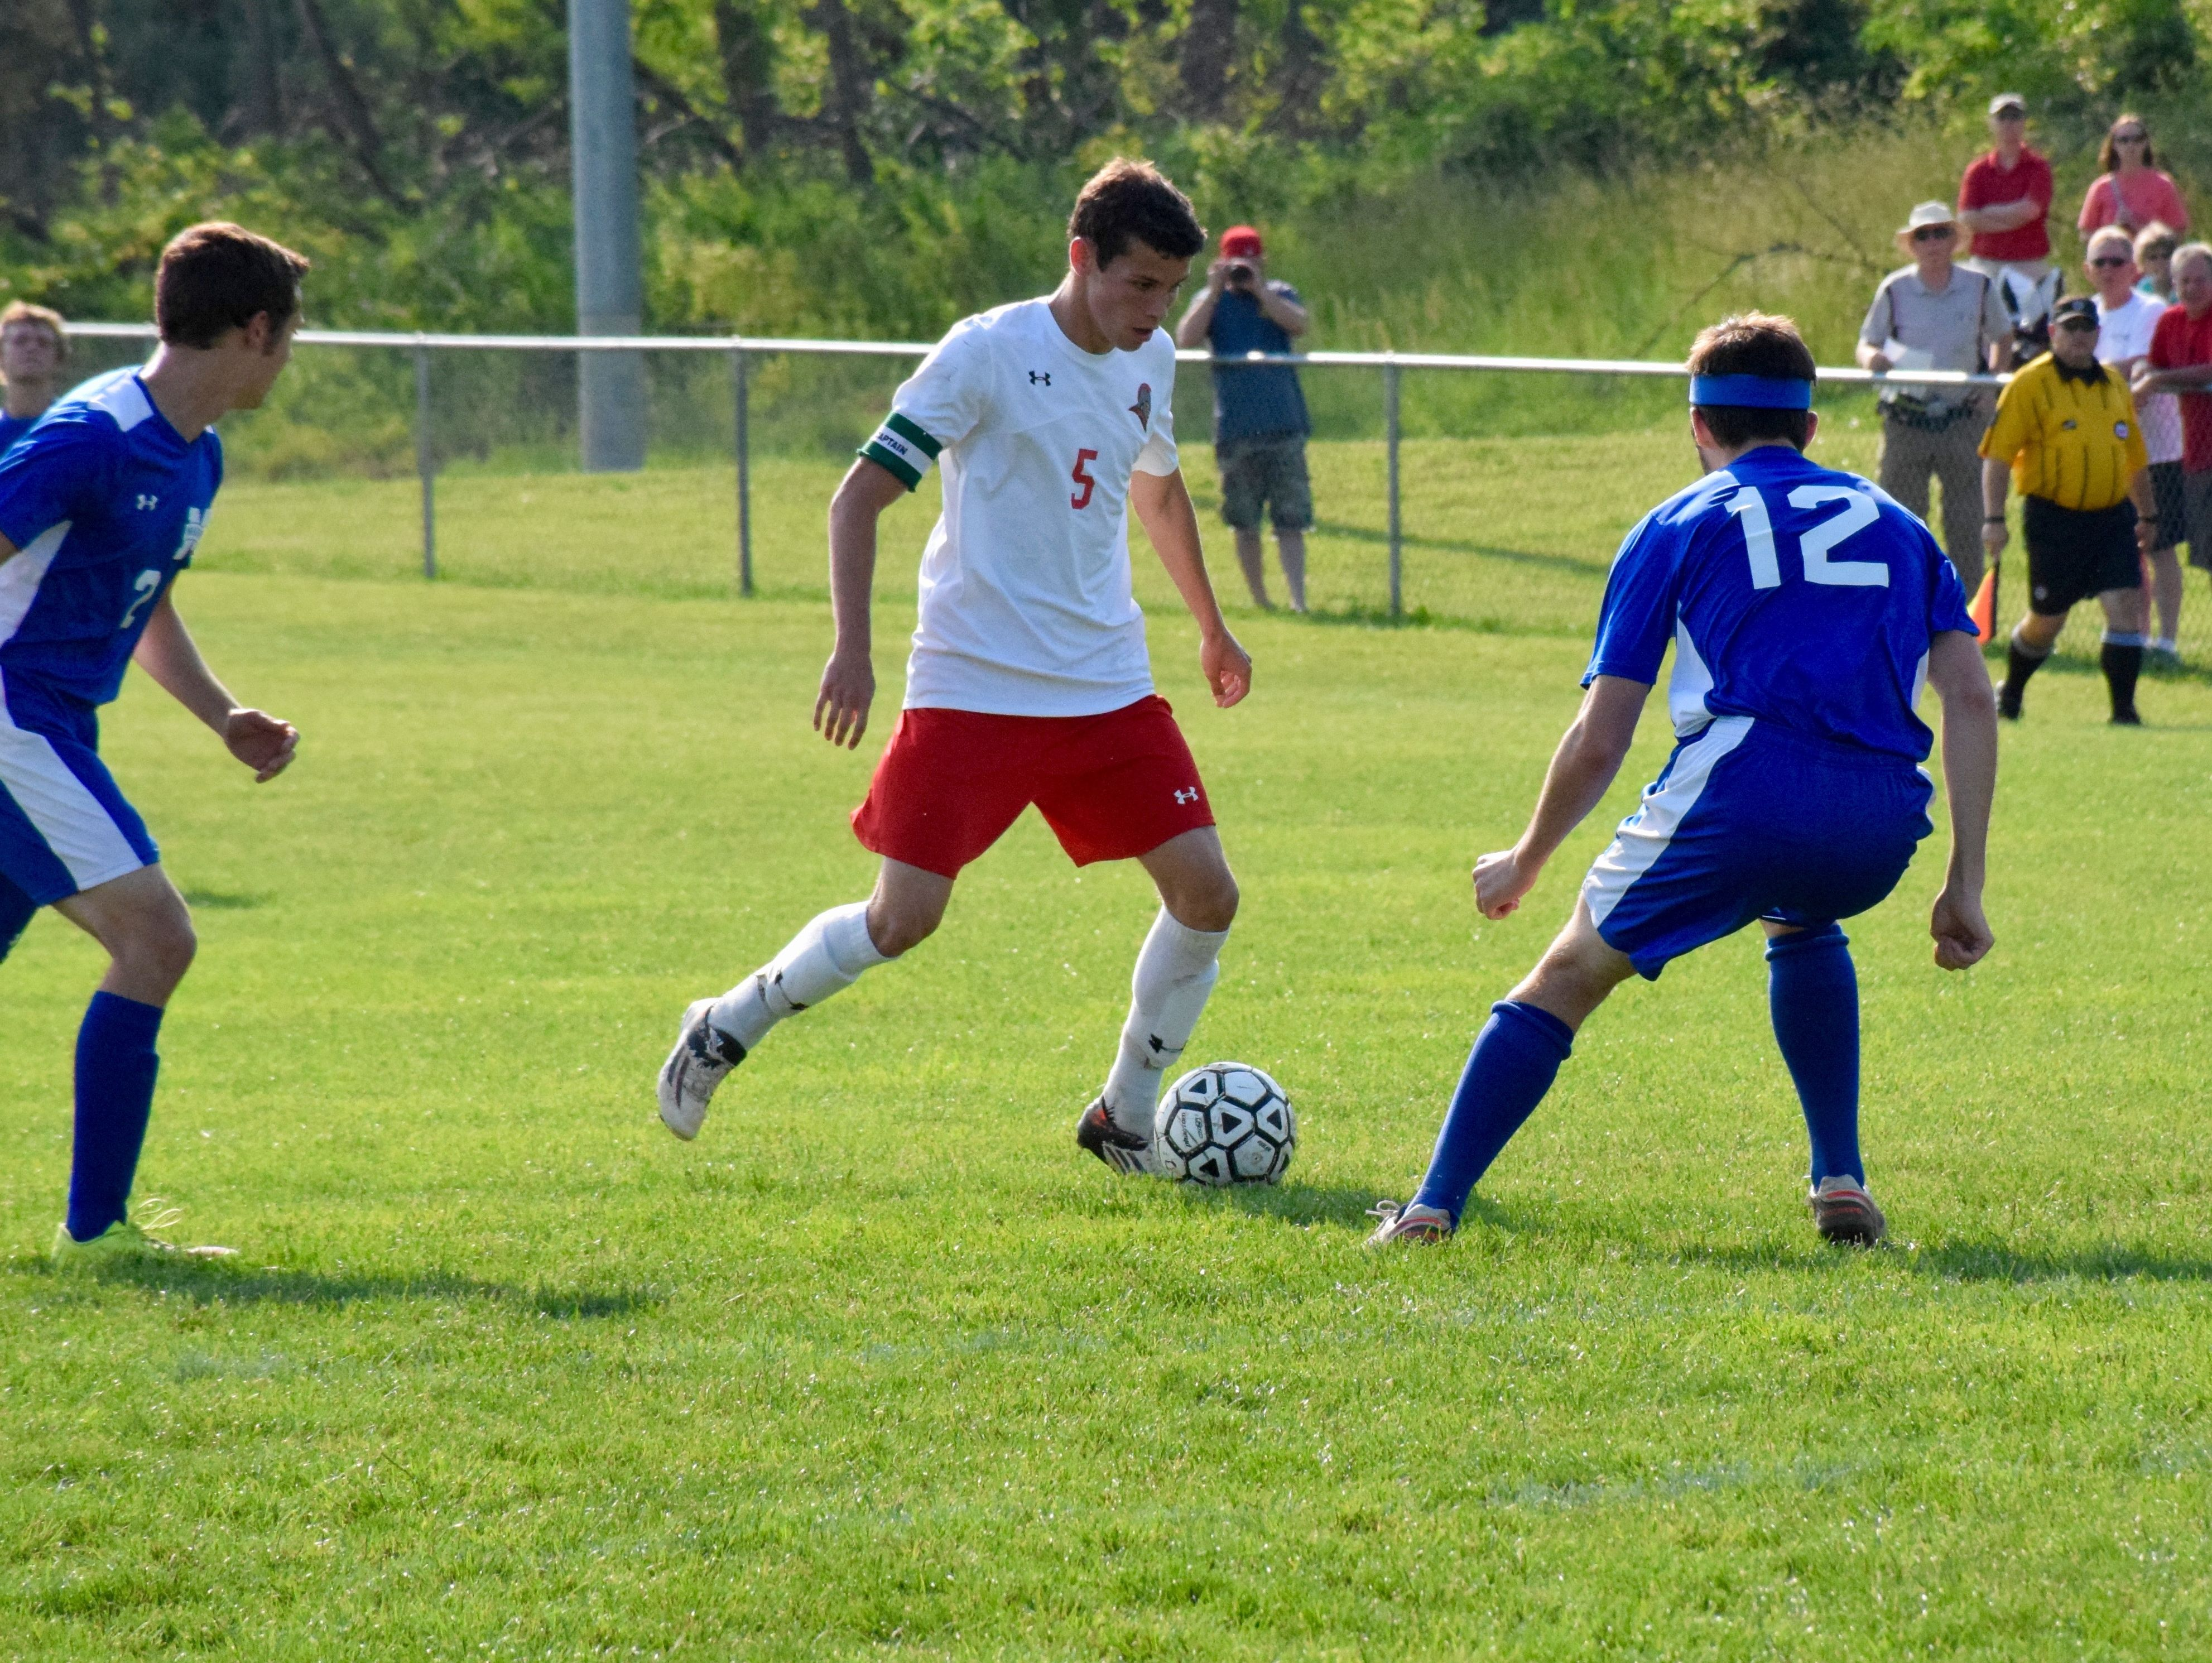 Riverheads' Elijah Knopp works against Mathews' Timothy White during the first half of the Gladiators' Region 1A East semifinal on Wednesday, June 1, 2016, at Riverheads High School in Greenville.